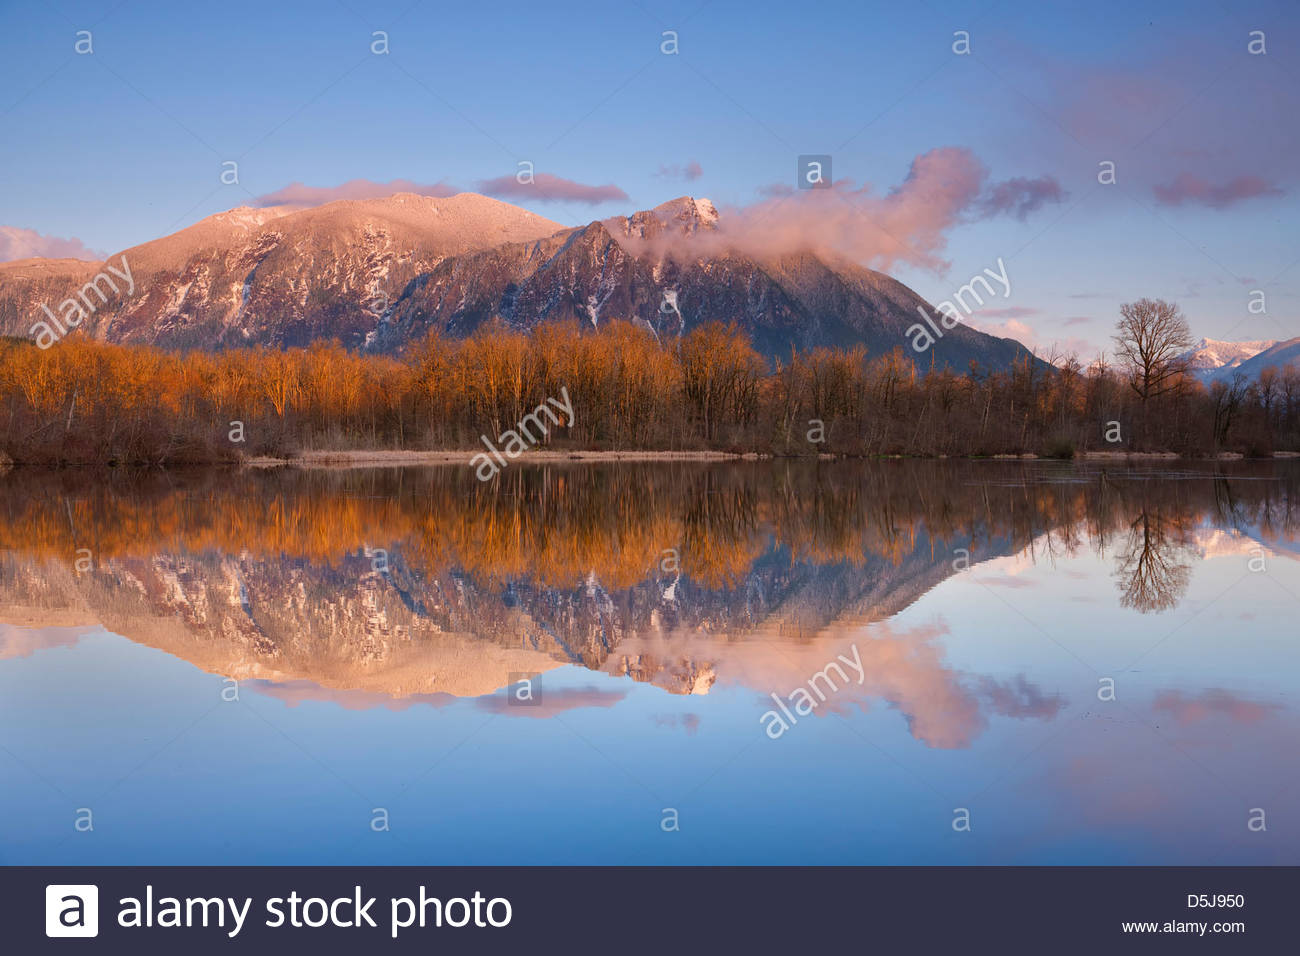 A snow storm clears at the summit of Mount Si, a 4,167 foot (1,270 meter) mountain near North Bend, Washington. - Stock Image